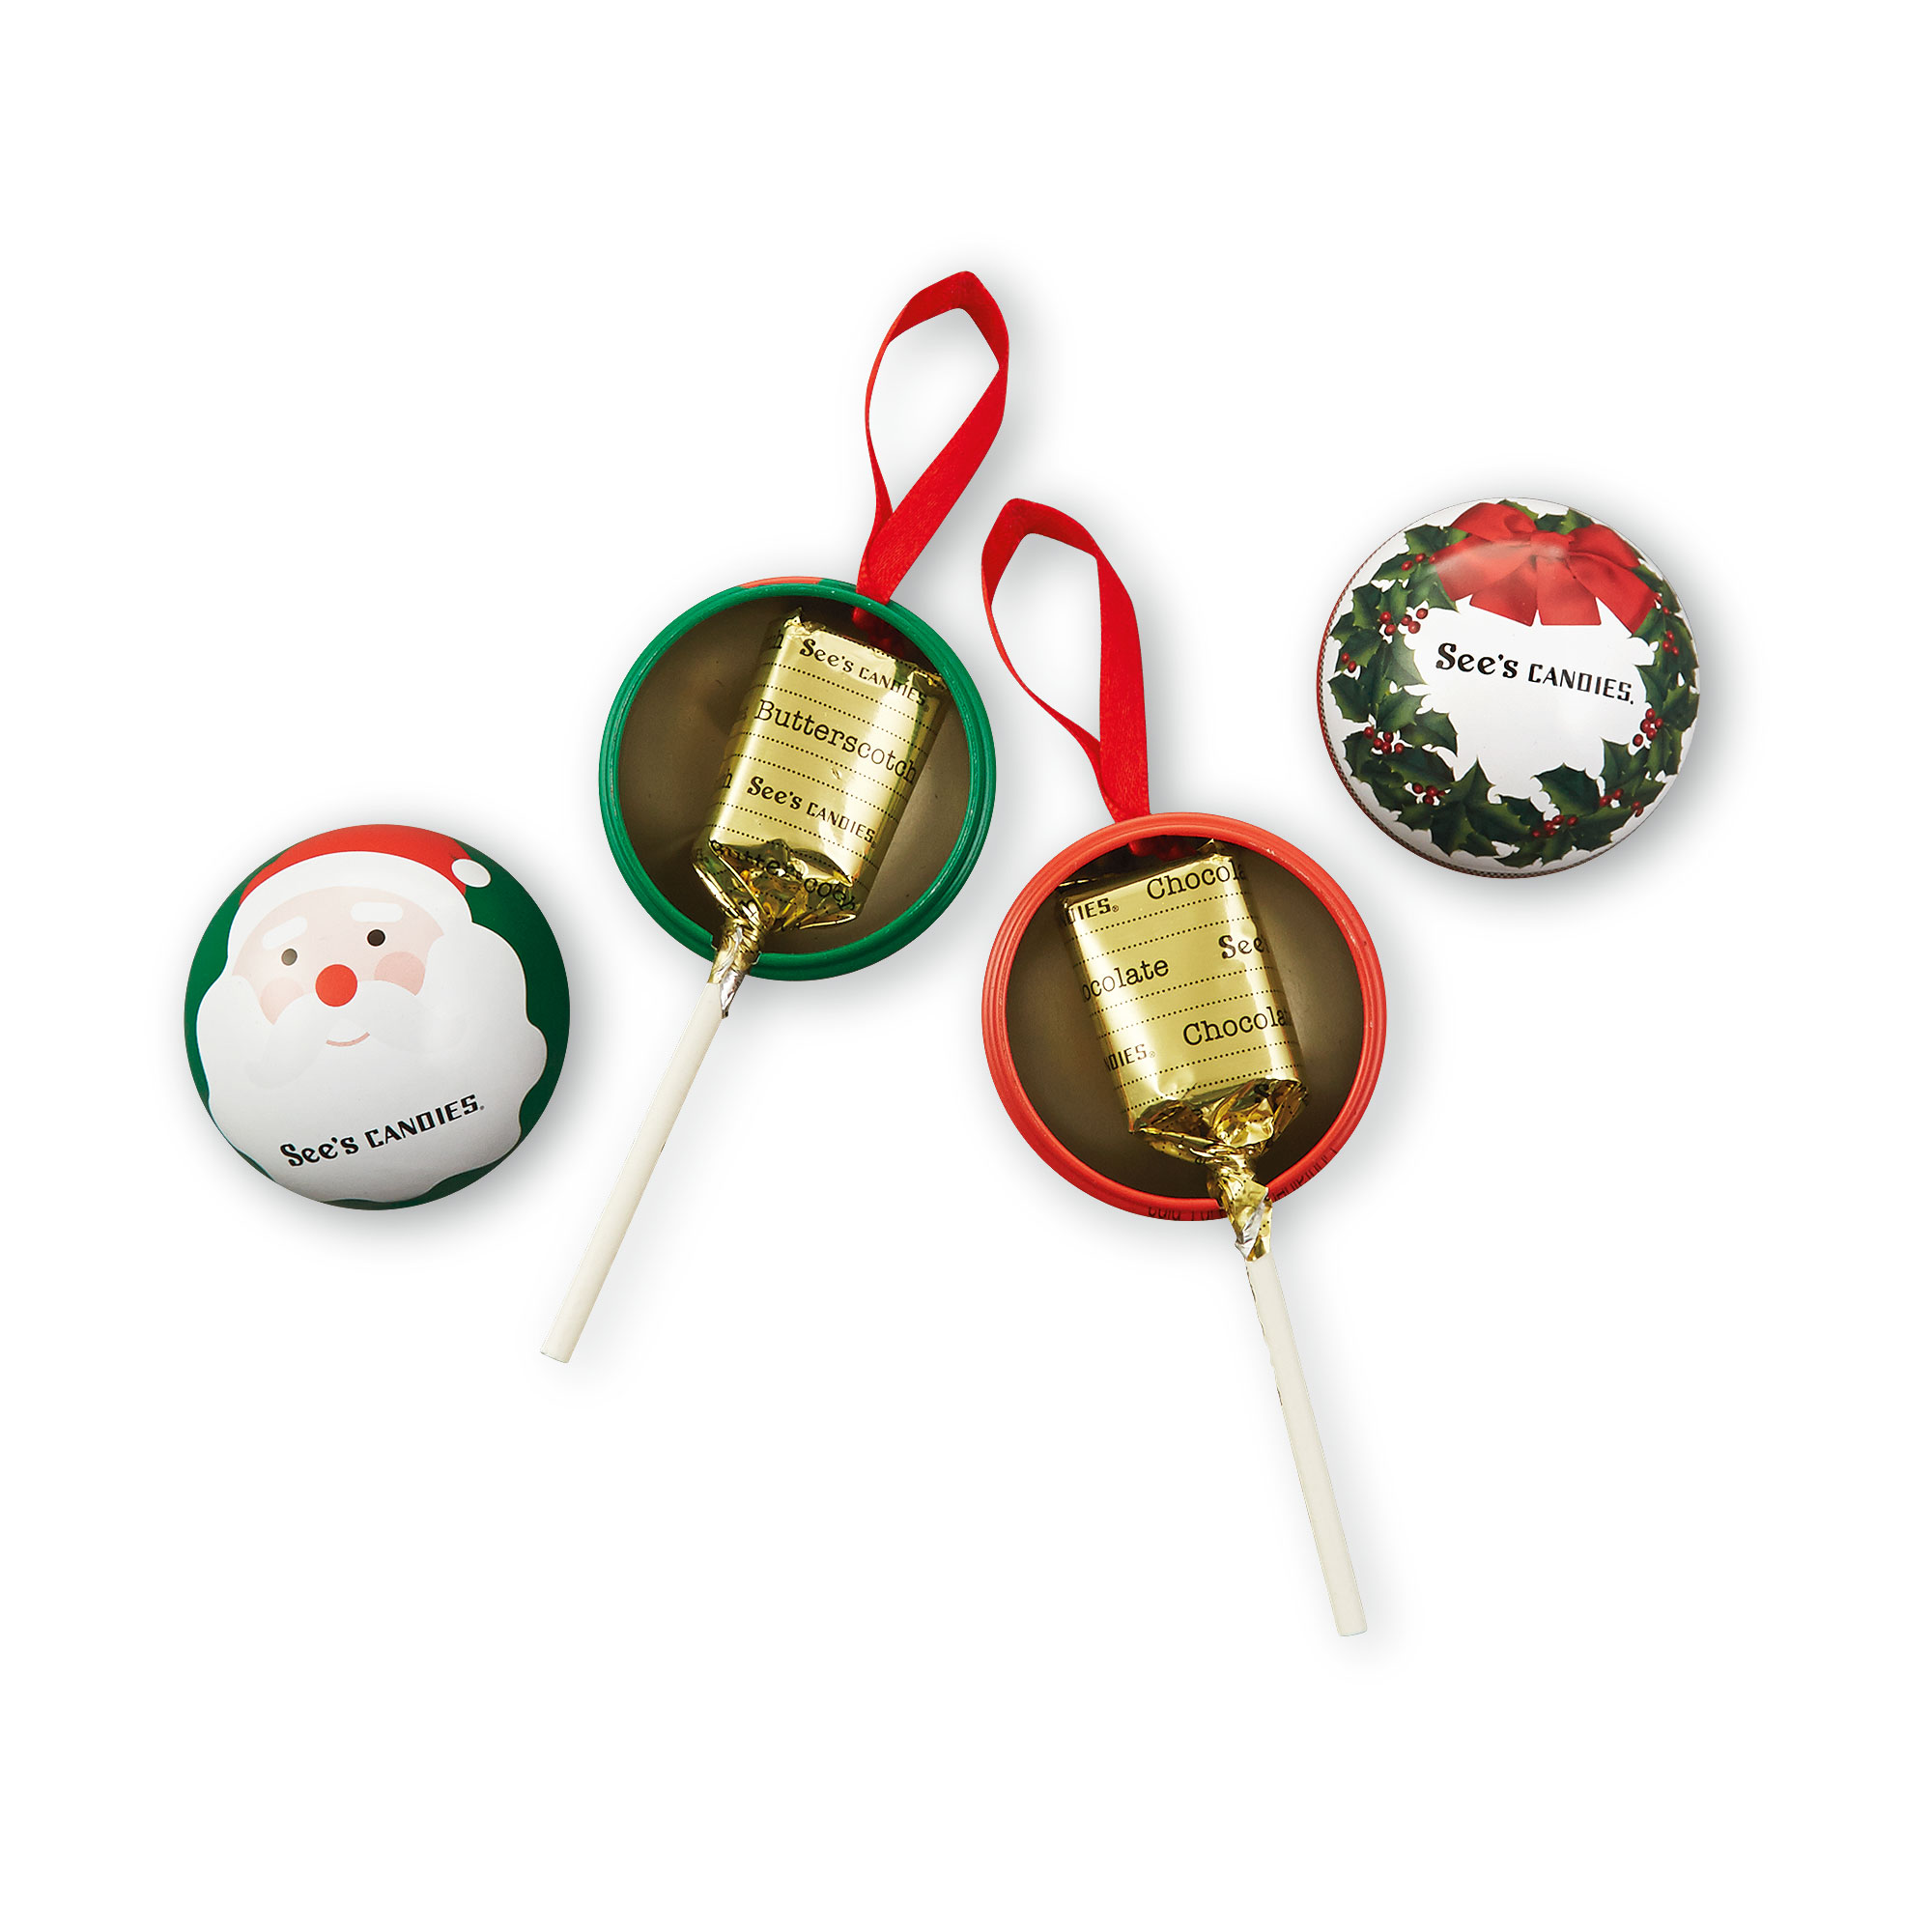 Stocking Stuffer FoodiesCredit: See's Candies